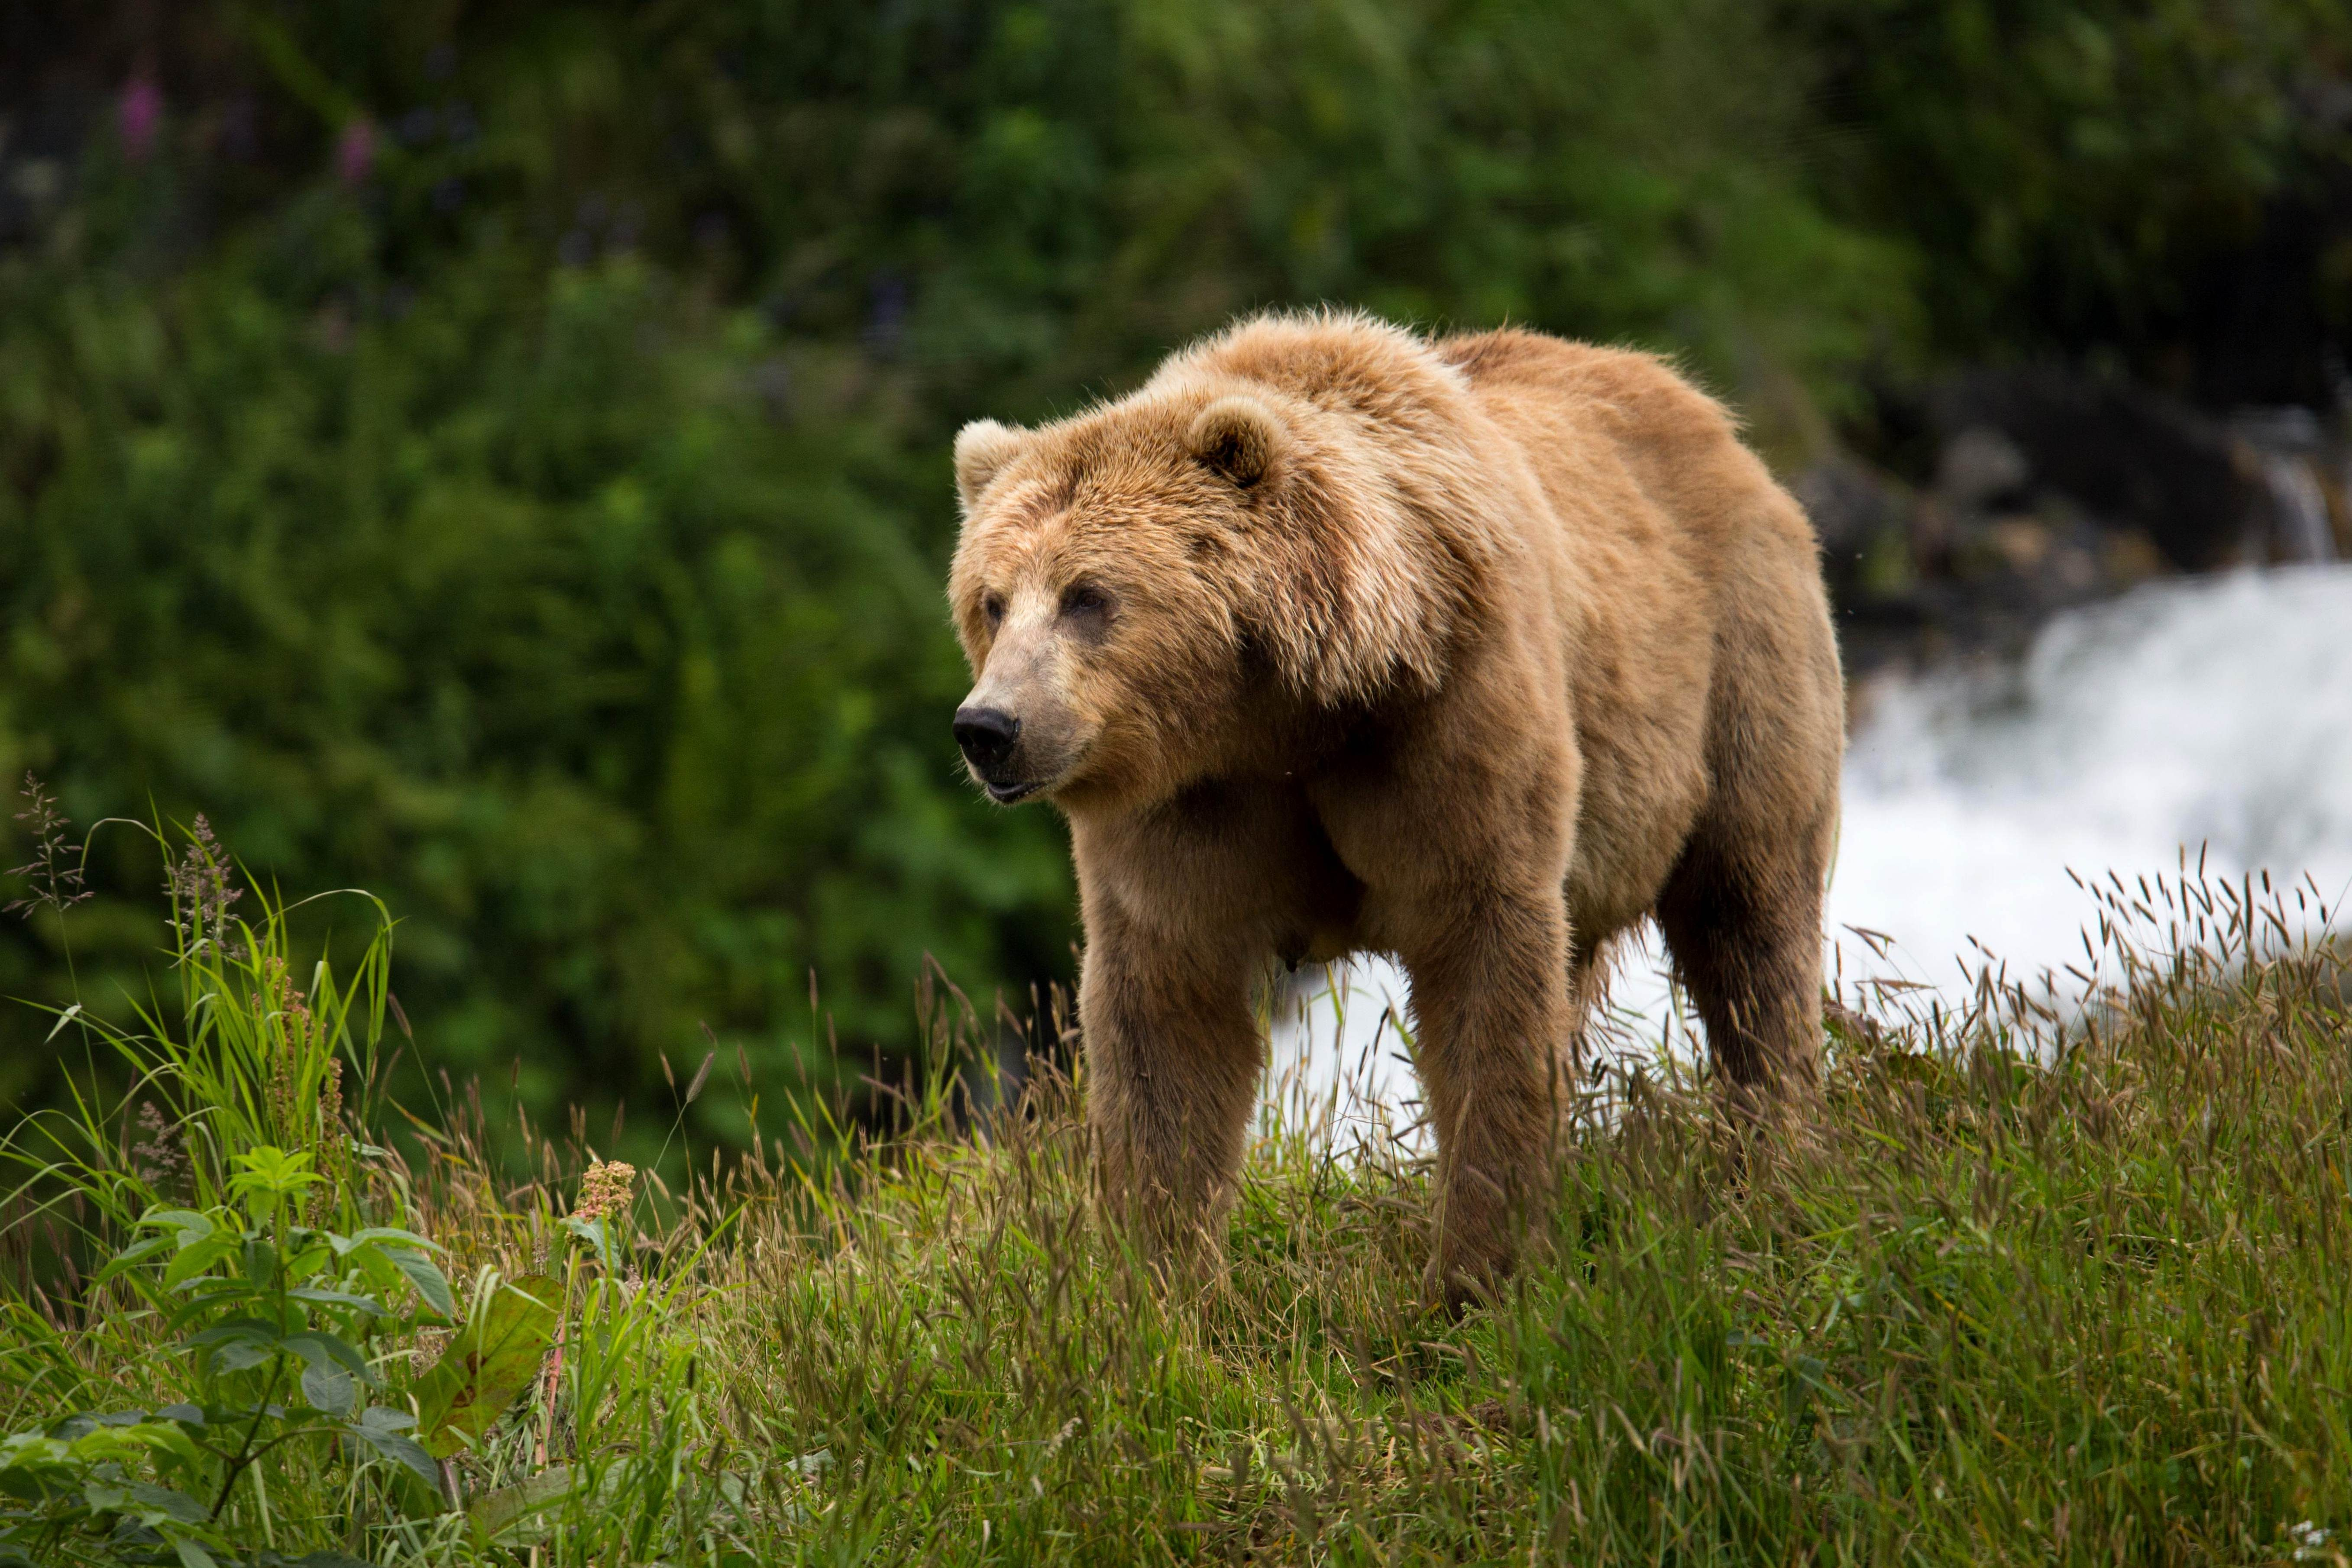 Nature Animal Wallpaper Hd Image Libre Ours Brun Truie